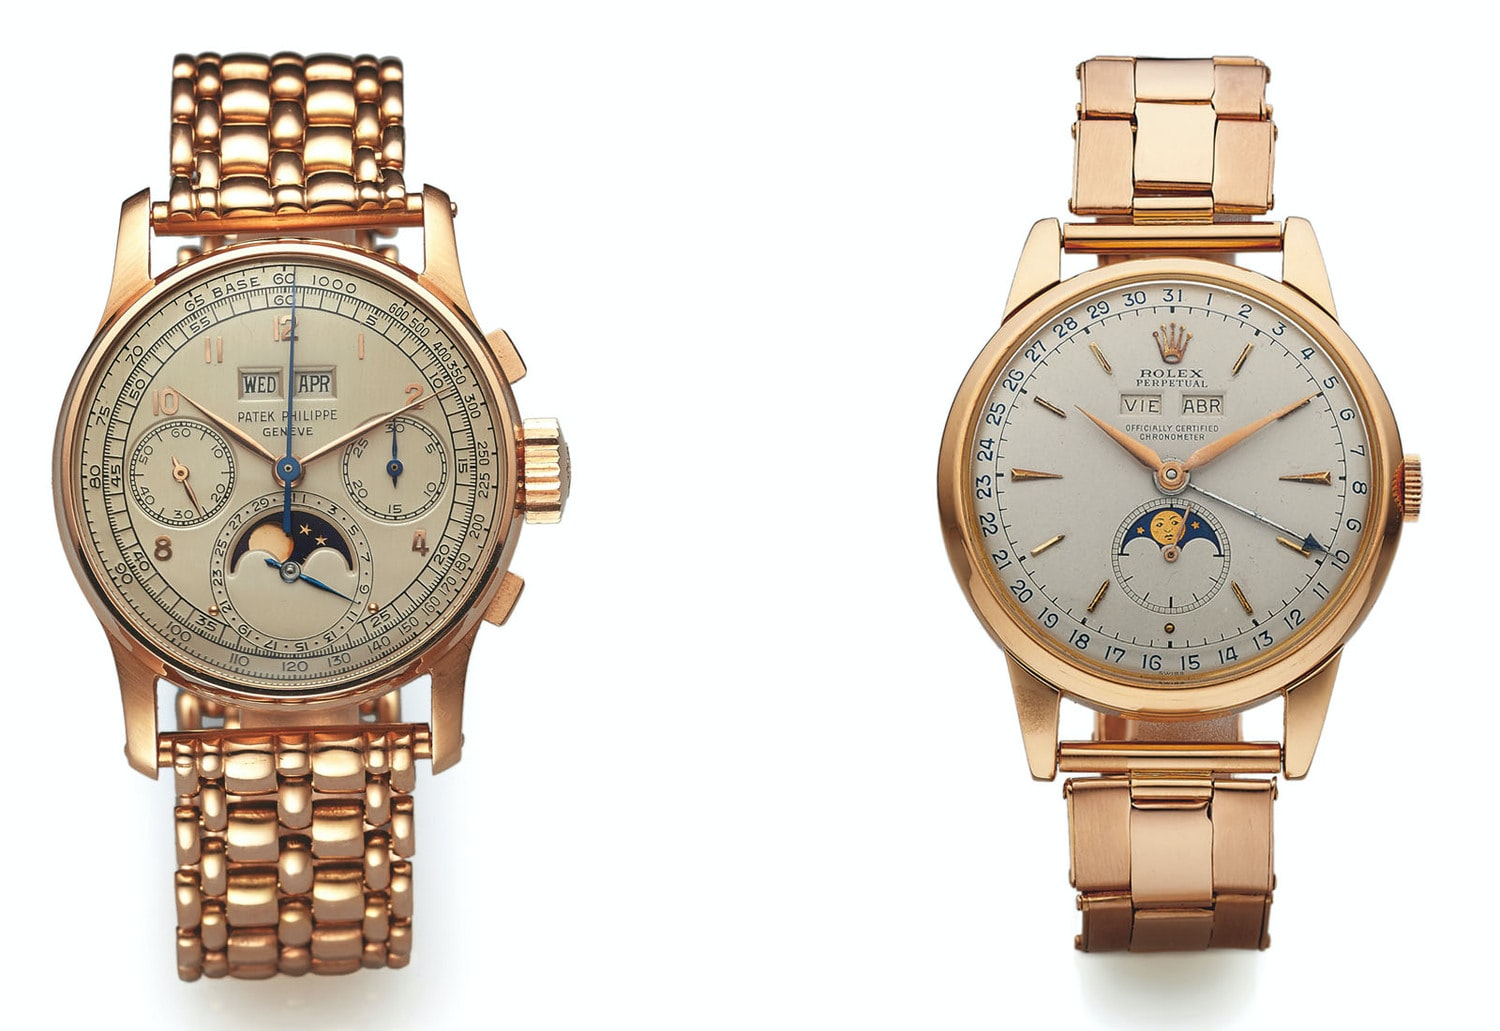 On The Block: Rose Gold Patek Phillipe Ref. 1518 And Rolex Ref. 8171 At Antiquorum New York